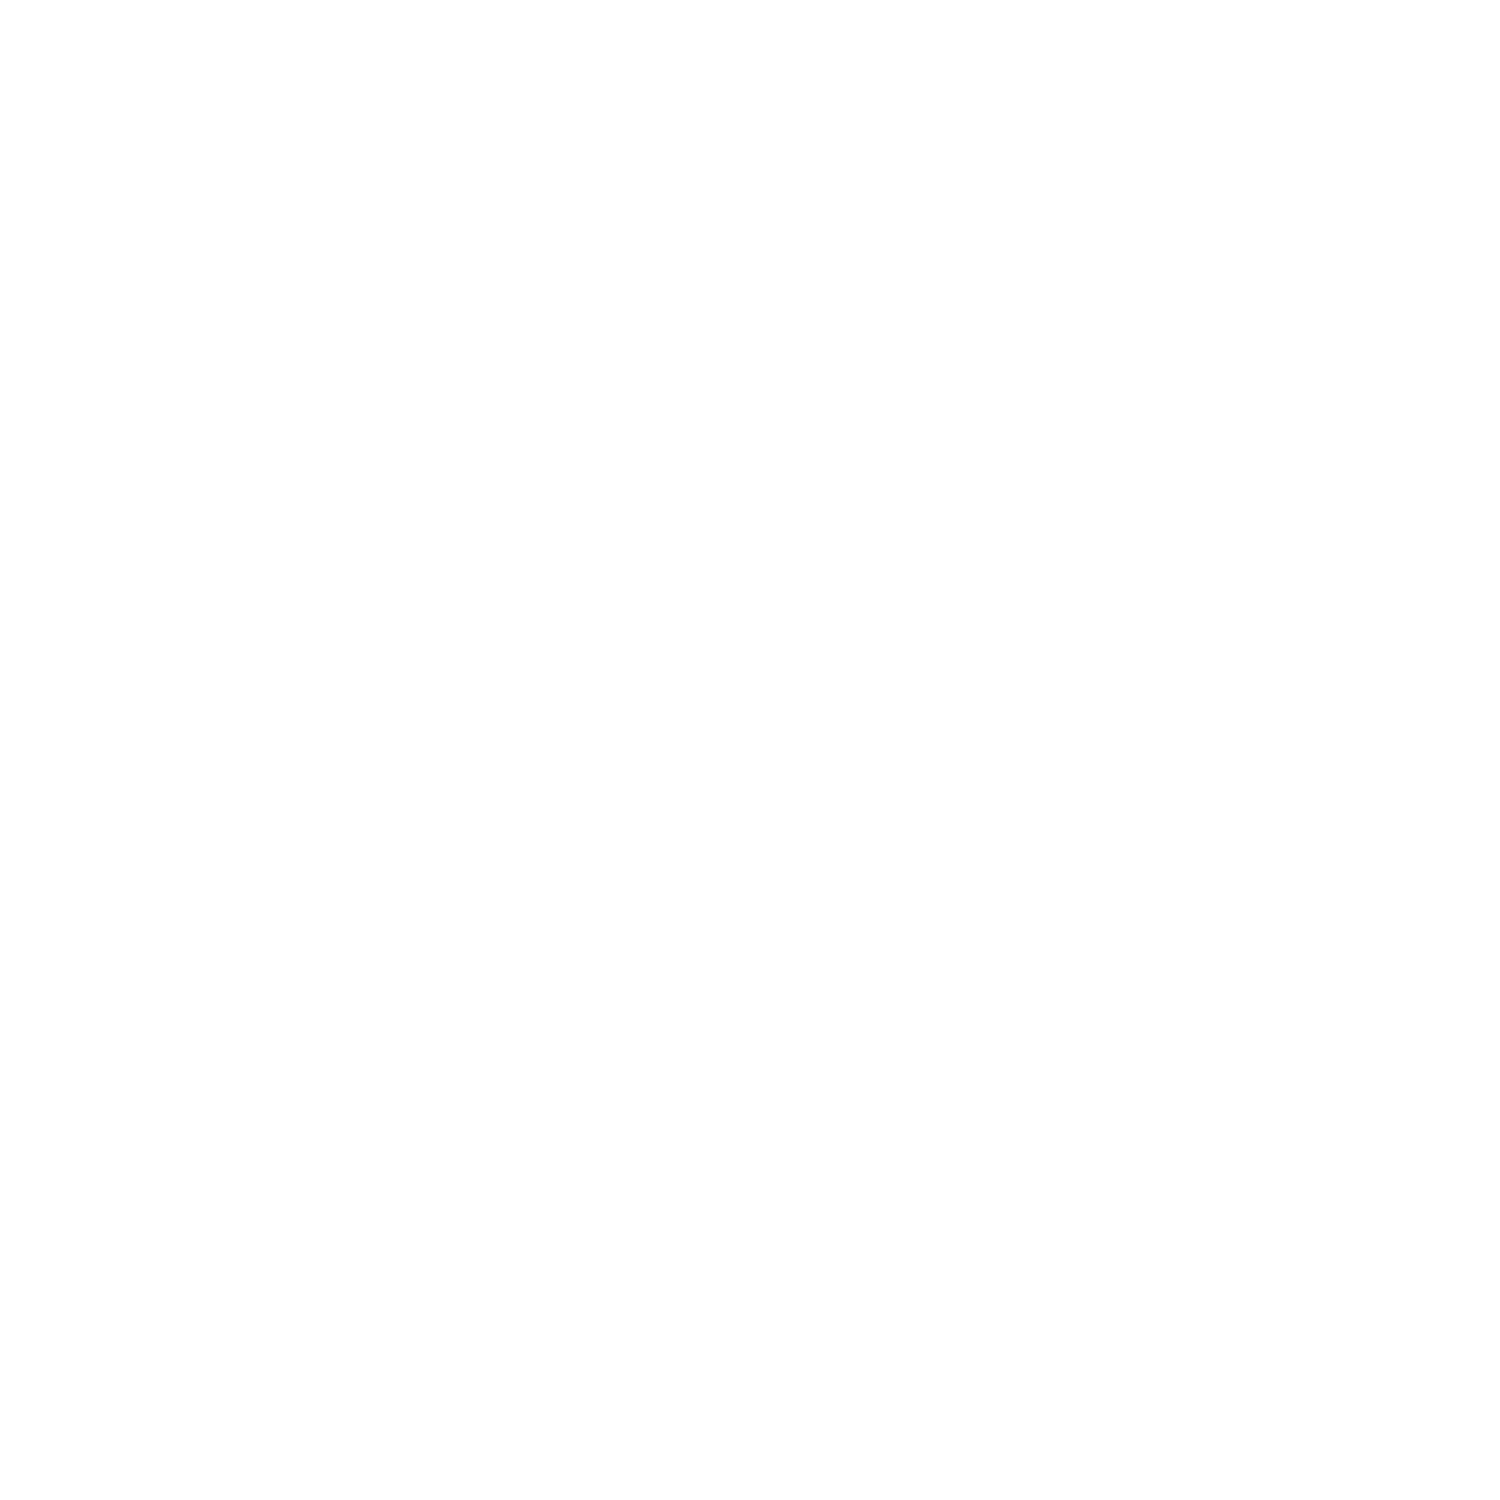 Give Clean